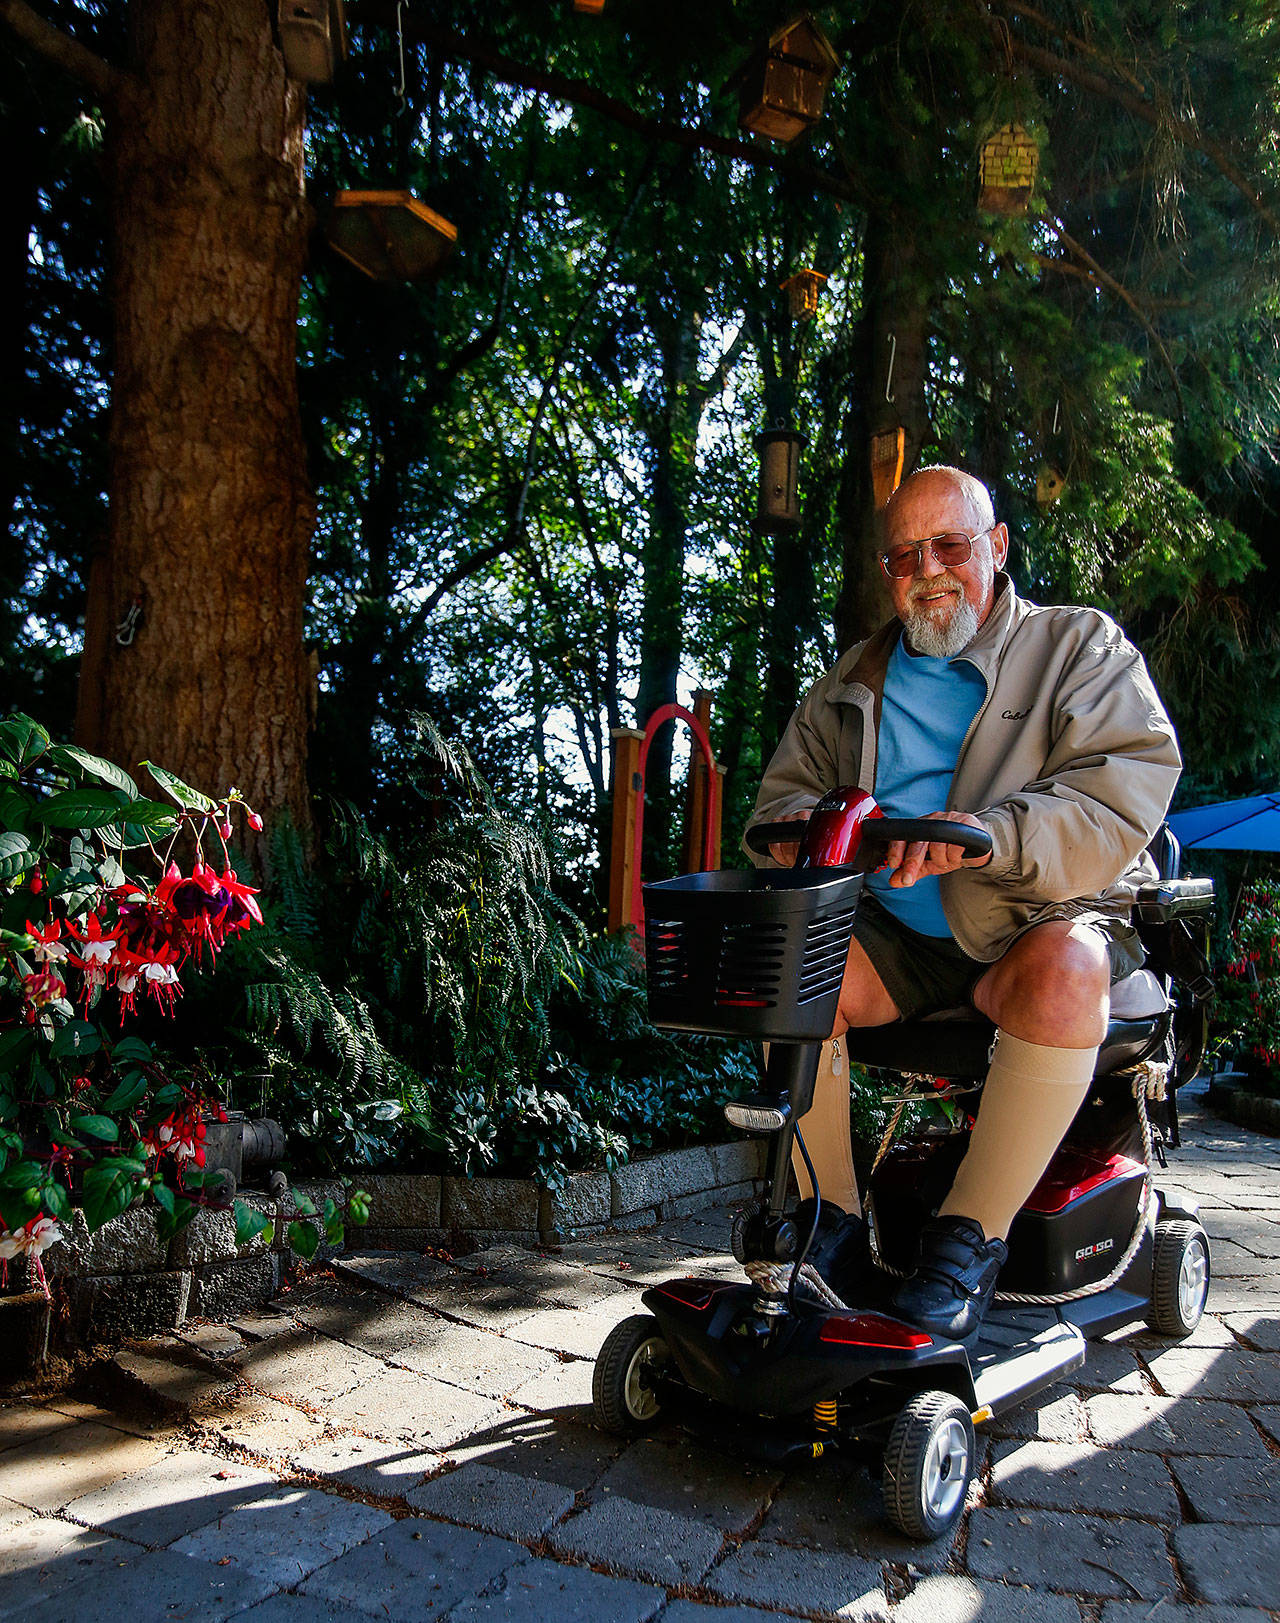 Jim Mathis was able to get around his garden paths Aug. 22 on his battery-powered transport. (Dan Bates / The Herald)